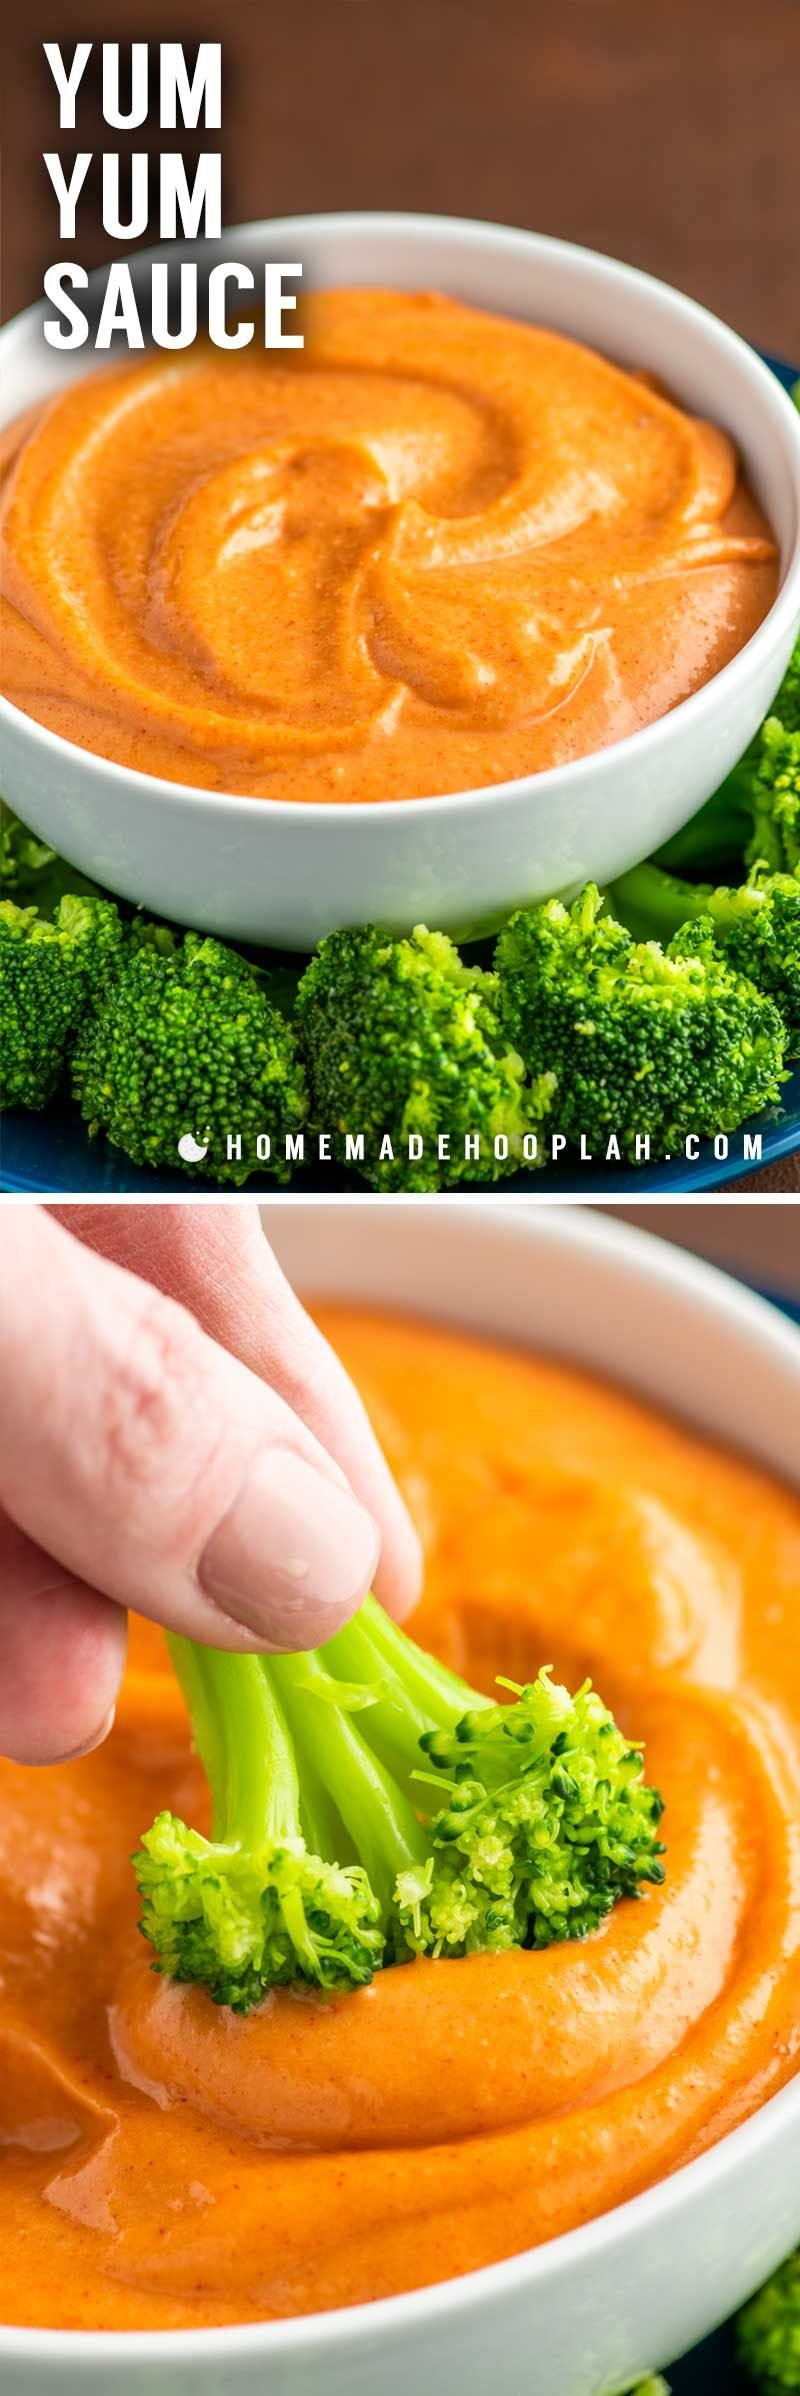 How to make yum yum sauce in just 5 minutes.